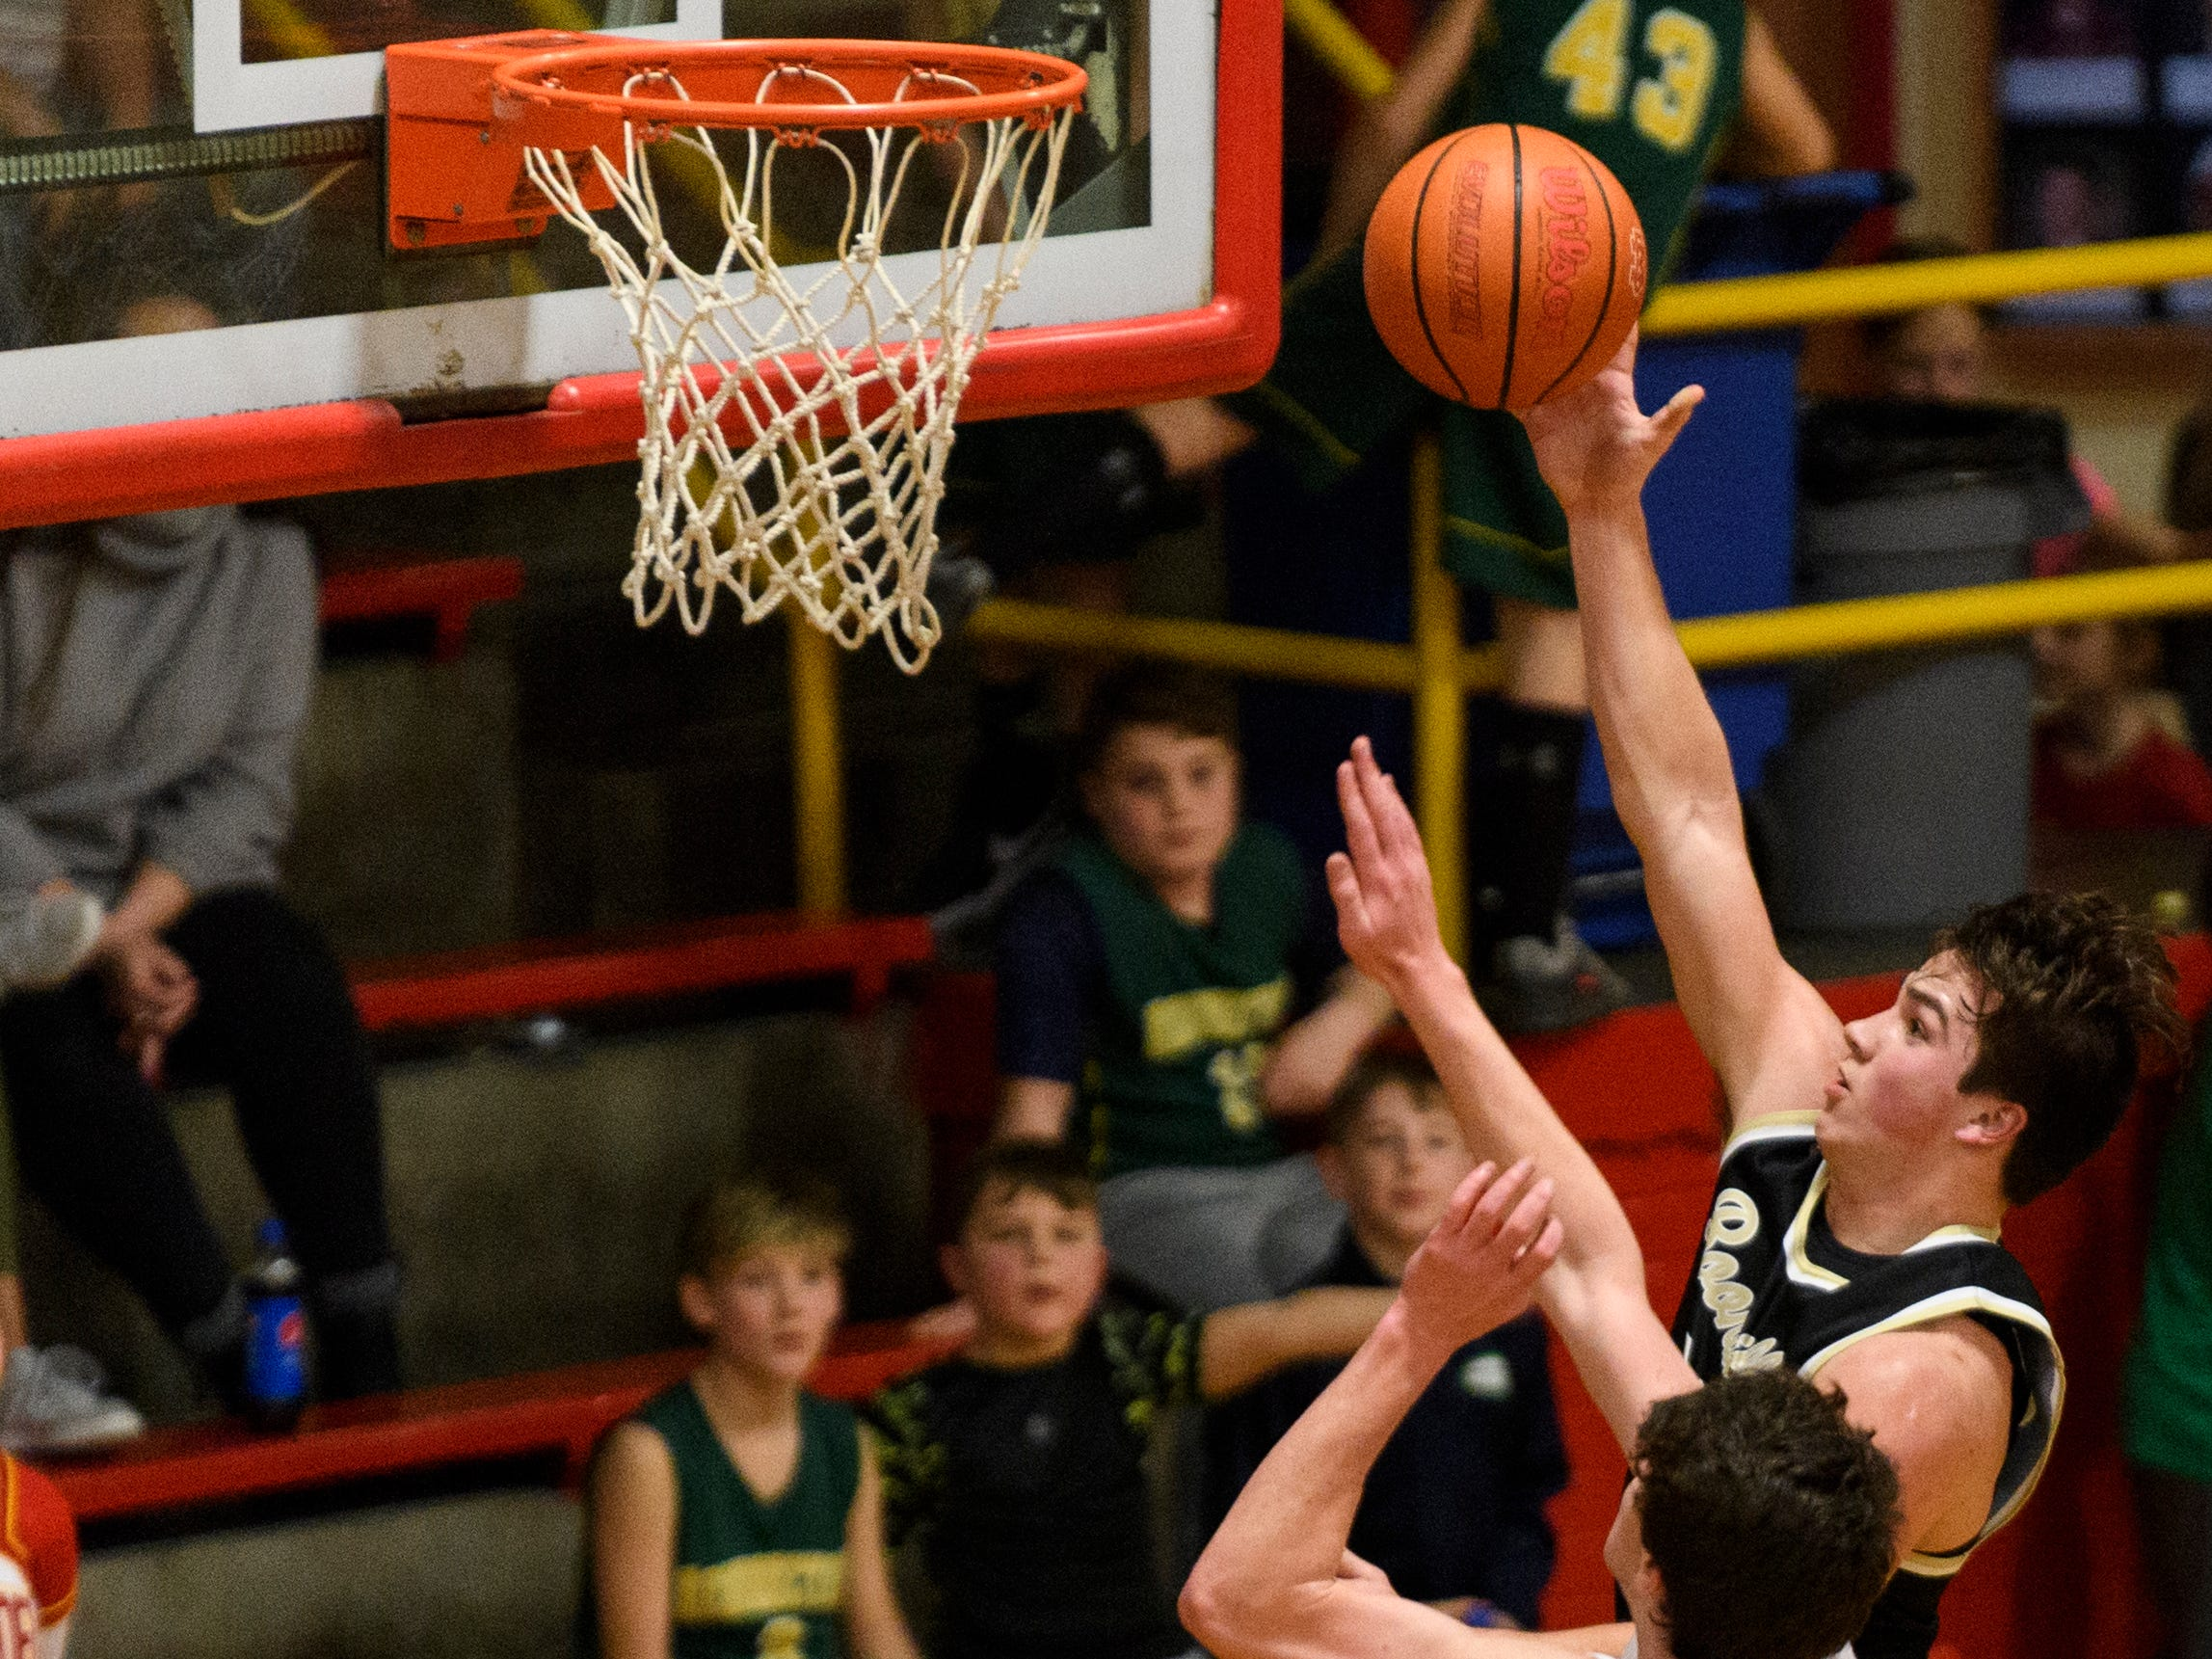 Boonville's Luke Conner (21) goes up for a lay-up during the fourth quarter against the Mater Dei Wildcats at Mater Dei High School in Evansville, Ind., Saturday, Jan. 5, 2019. The Wildcats defeated the Pioneers, 93-65.